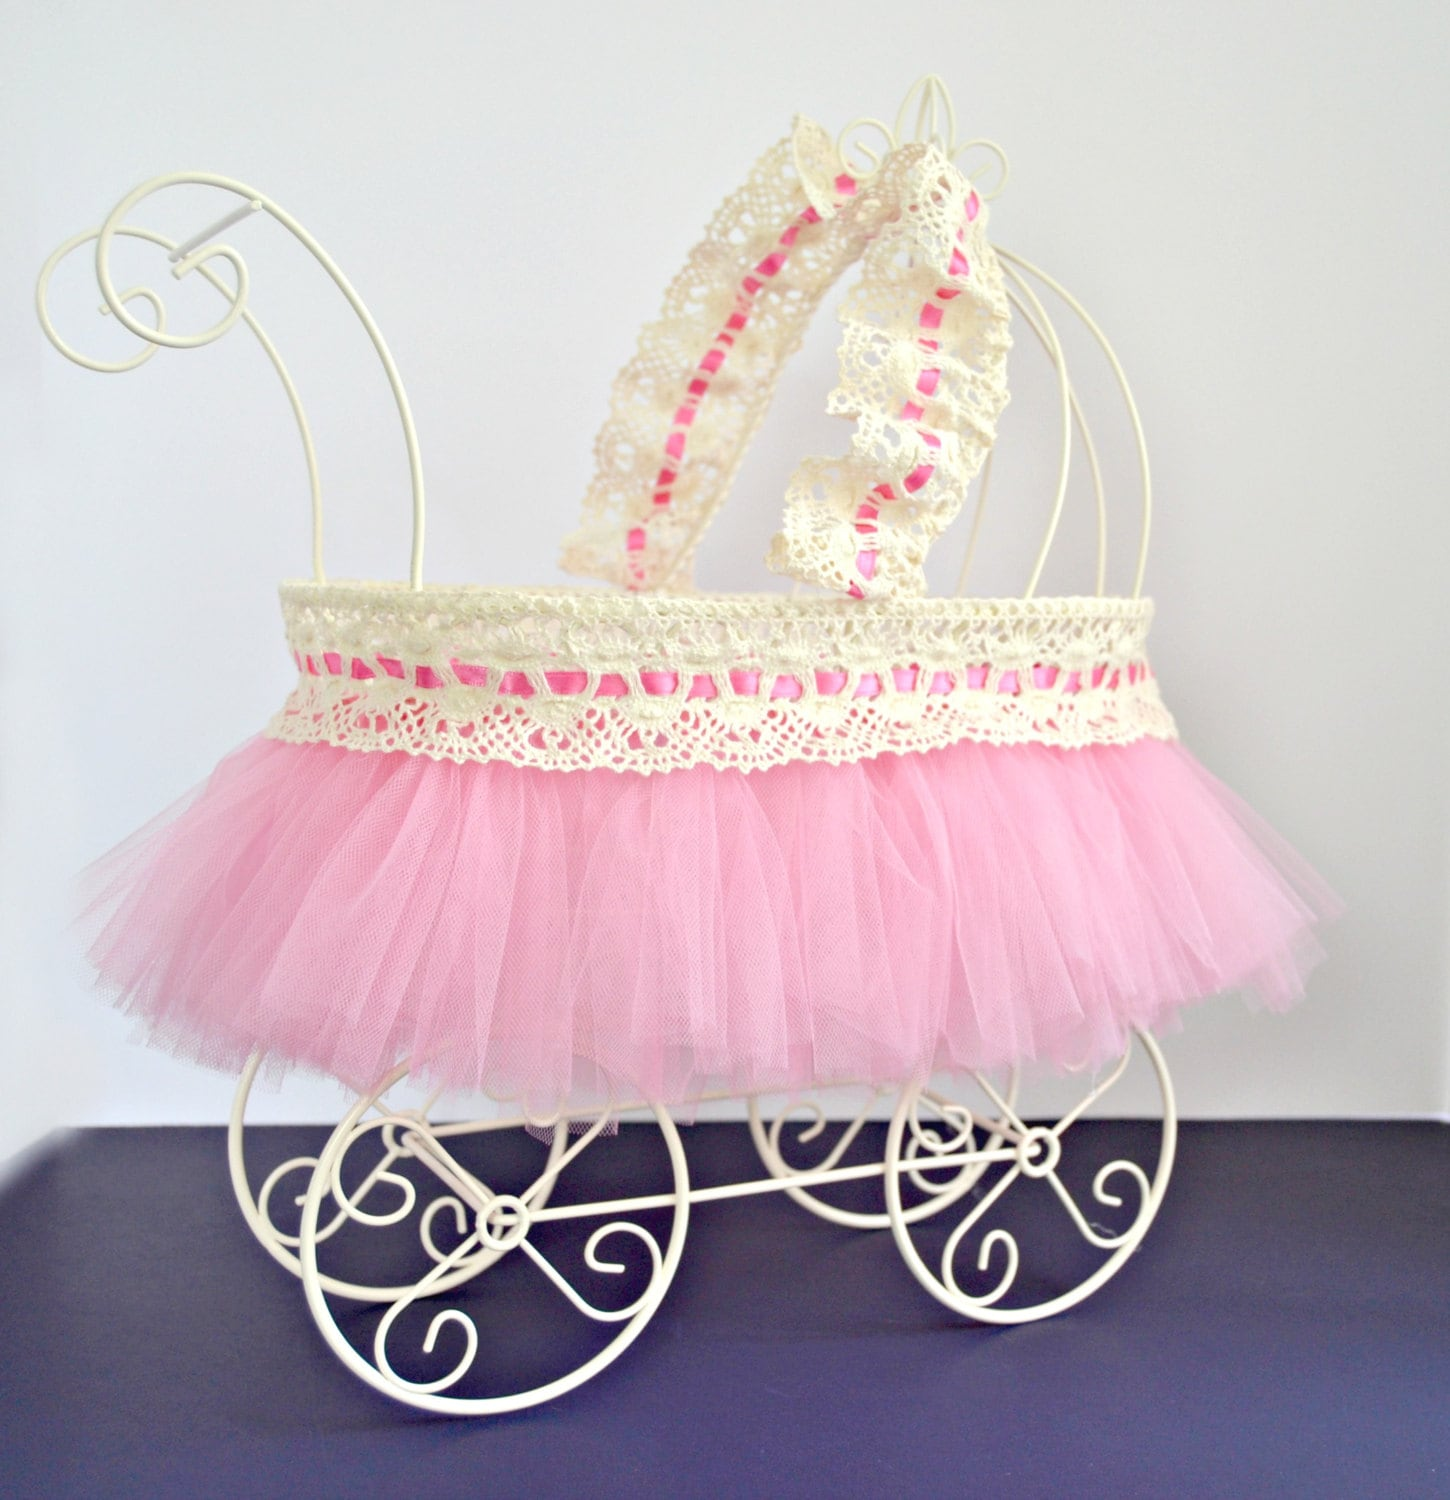 Baby carriage baby shower centerpiece ivory wire baby pram for Baby carriage decoration